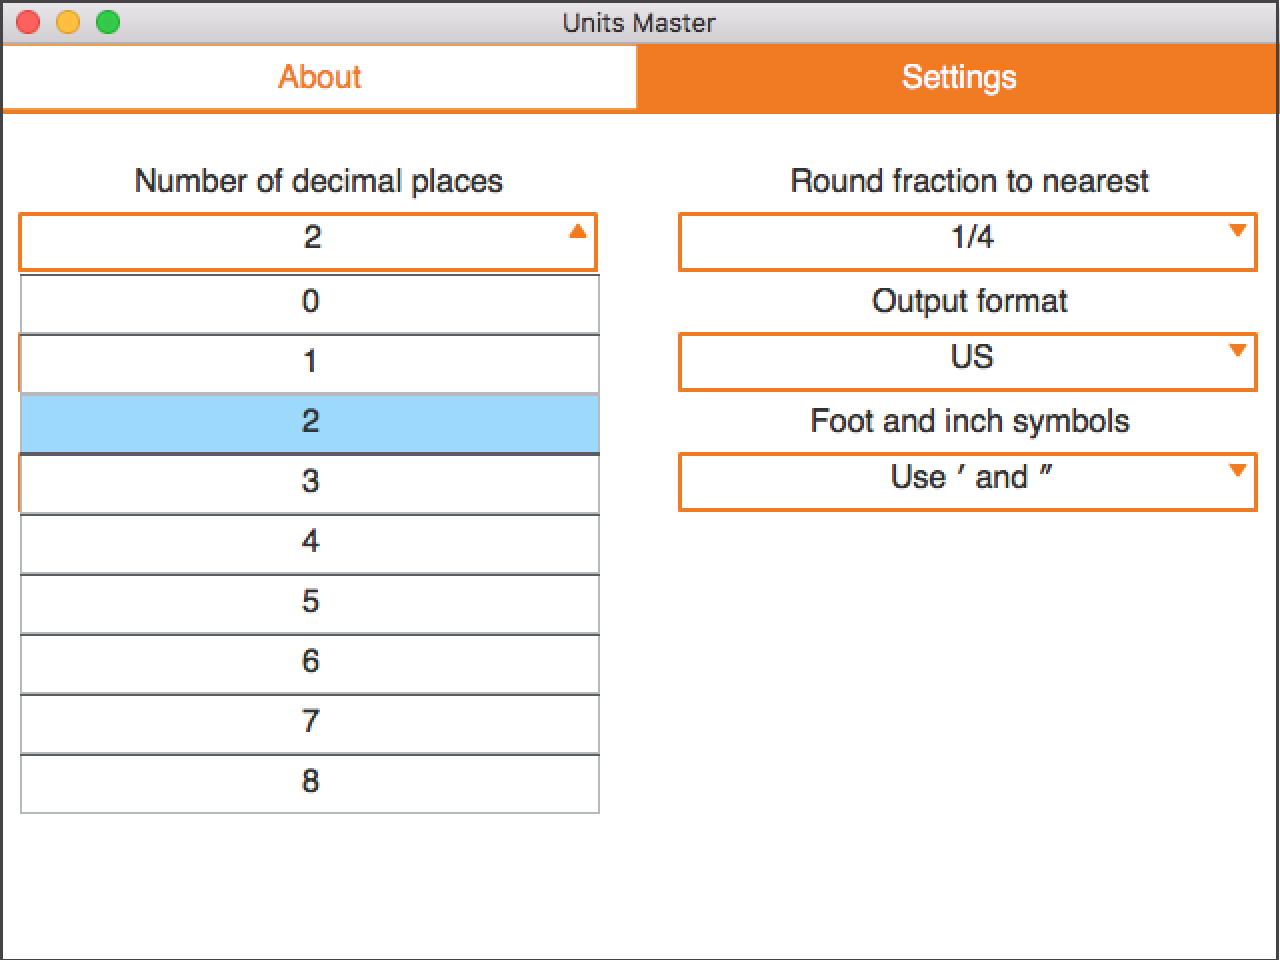 Rounding settings for decimals